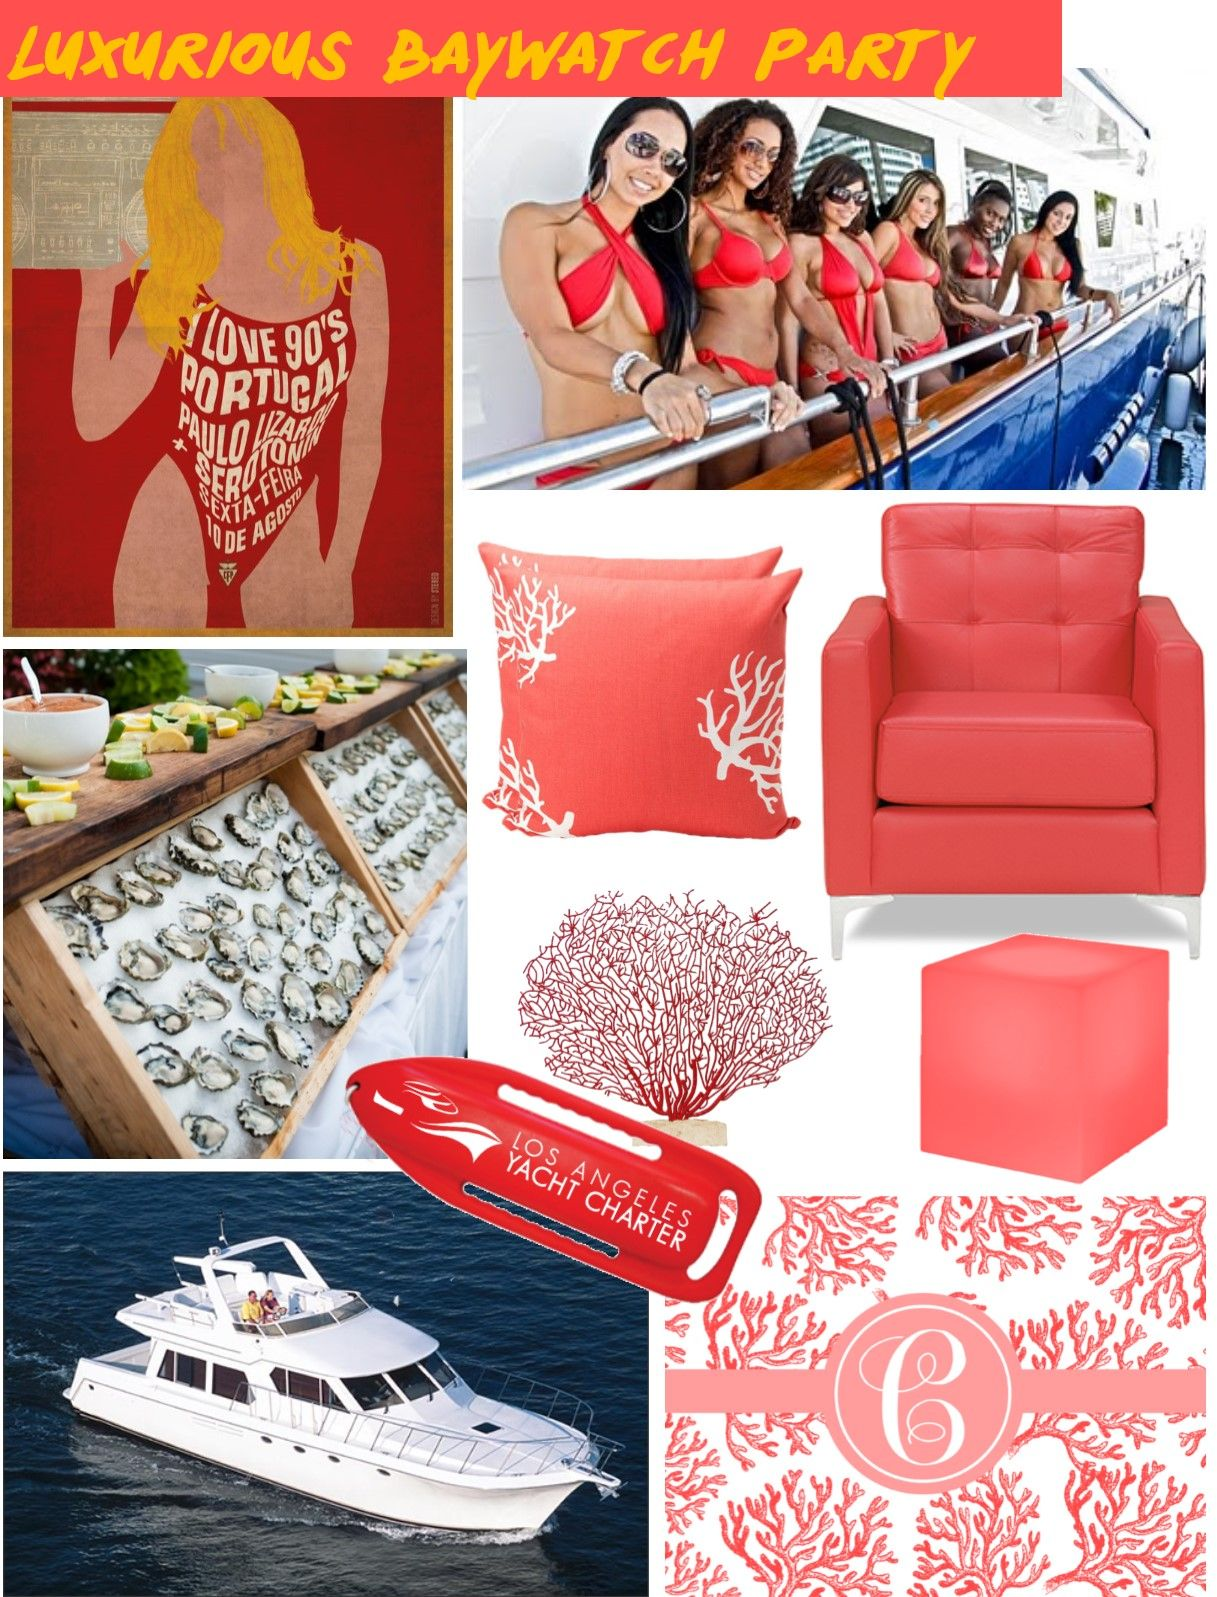 Pin By Los Angeles Yacht Charter On Party Themes For The Sea Yacht Yacht Charter Yacht Rental